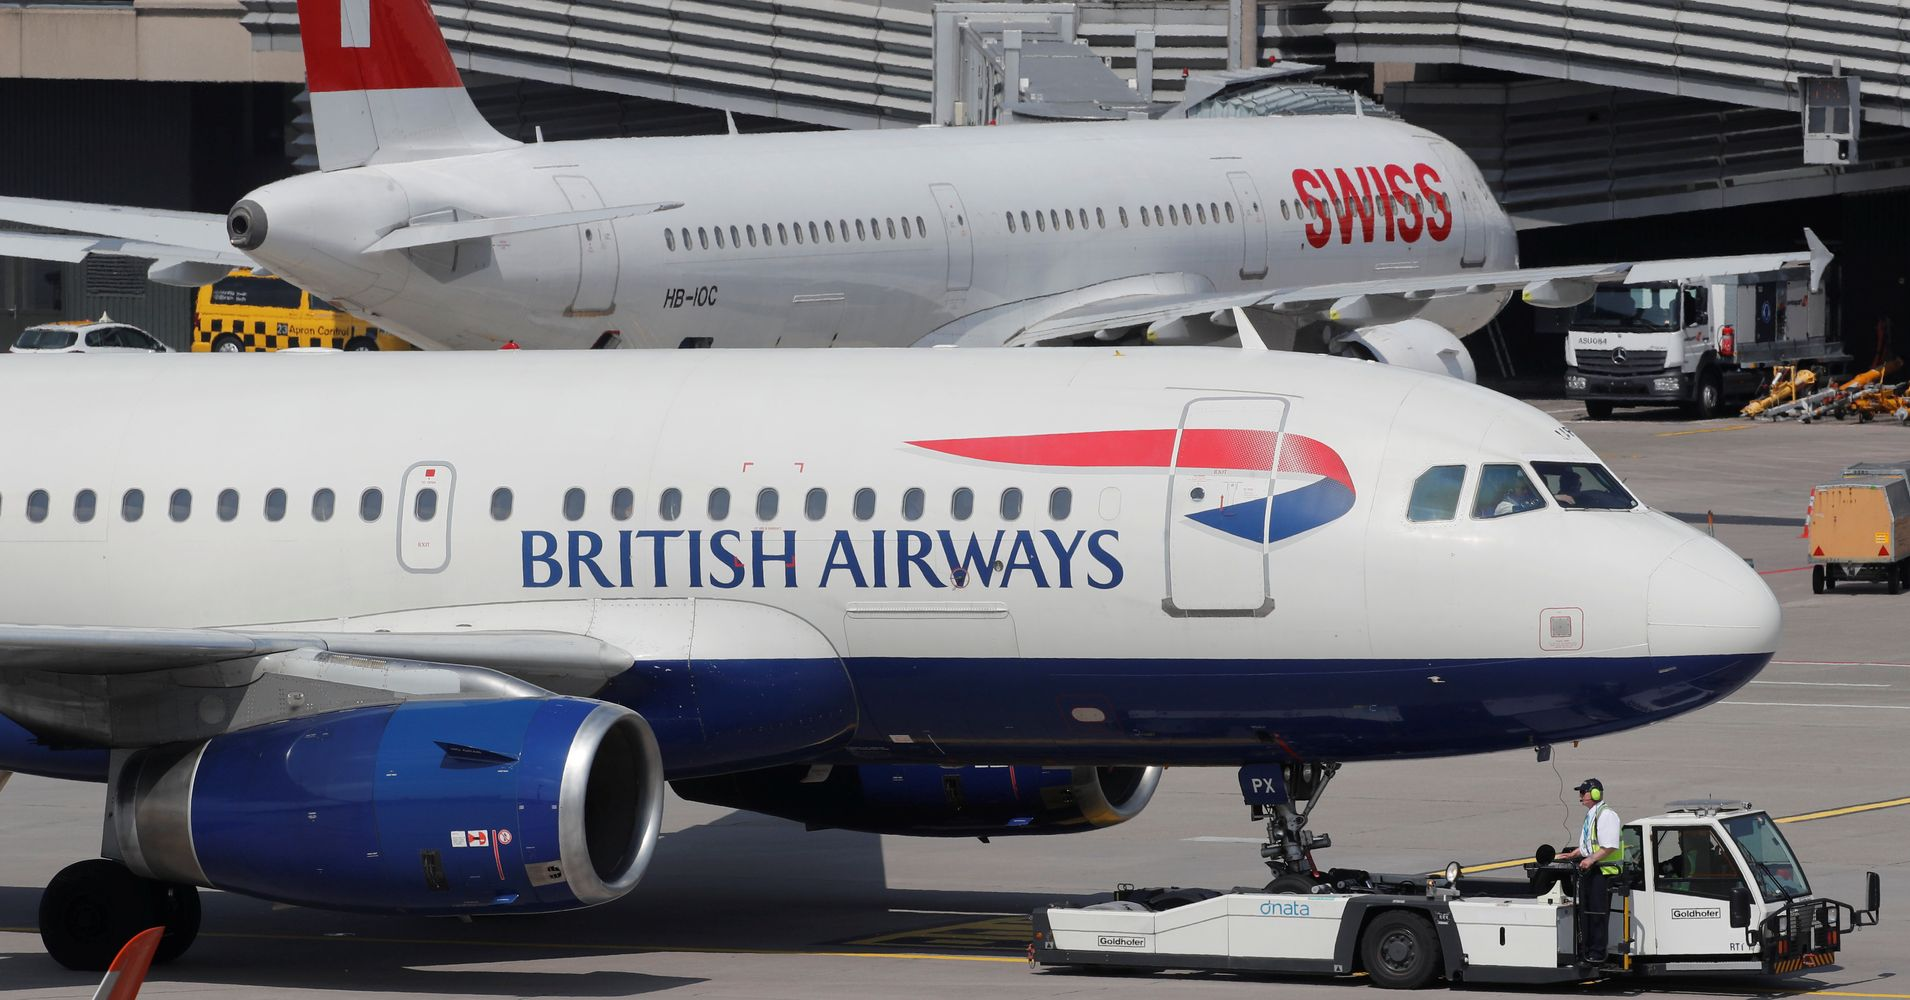 British Airways suspended all flights to Cairo citing security concerns